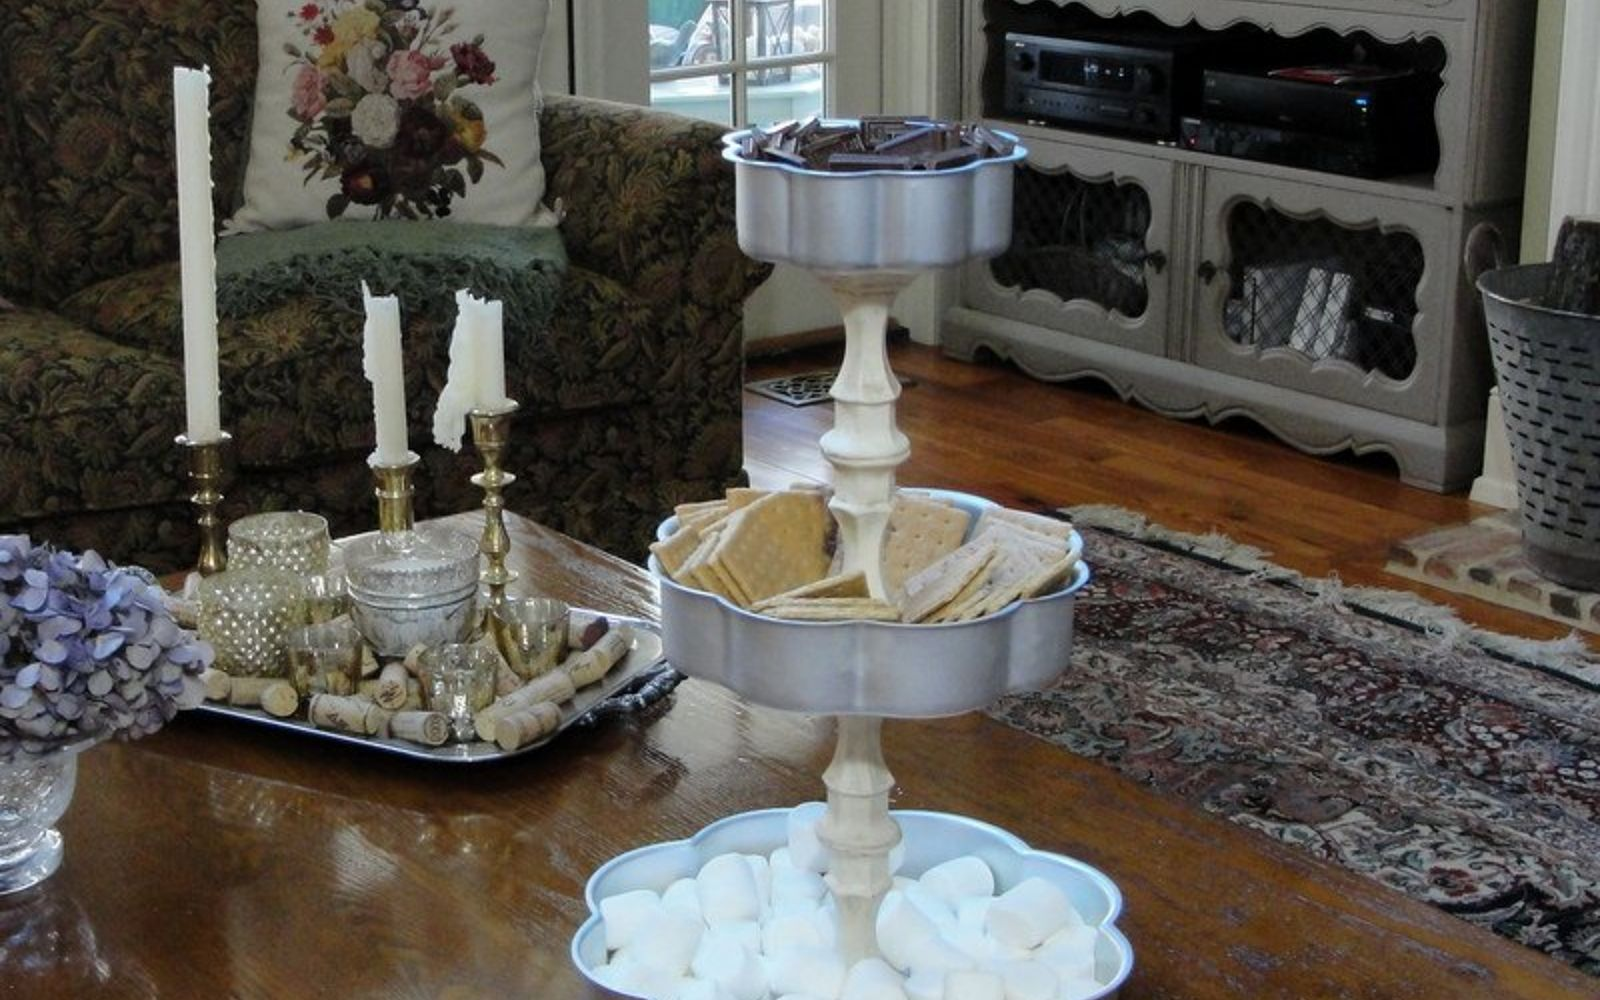 s 14 hidden home decor gems you can find in any dollar store, home decor, repurposing upcycling, Glass candlesticks are great for tiered trays